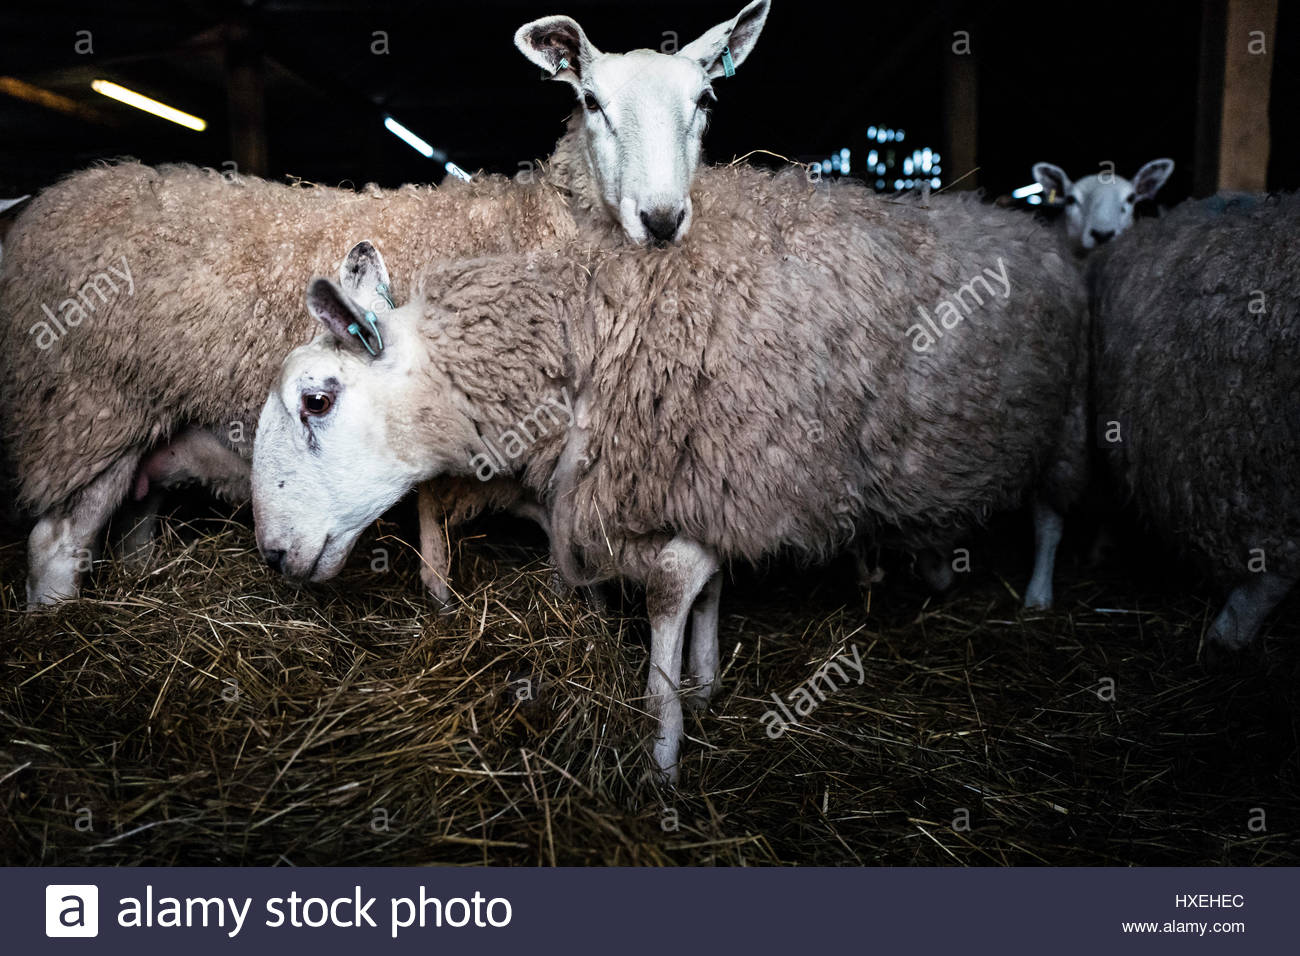 Oxnam Row Farm, Jedburgh, Scottish Borders, UK. 27th March 2017. Early morning in a lambing shed with Cheviot ewes - Stock Image